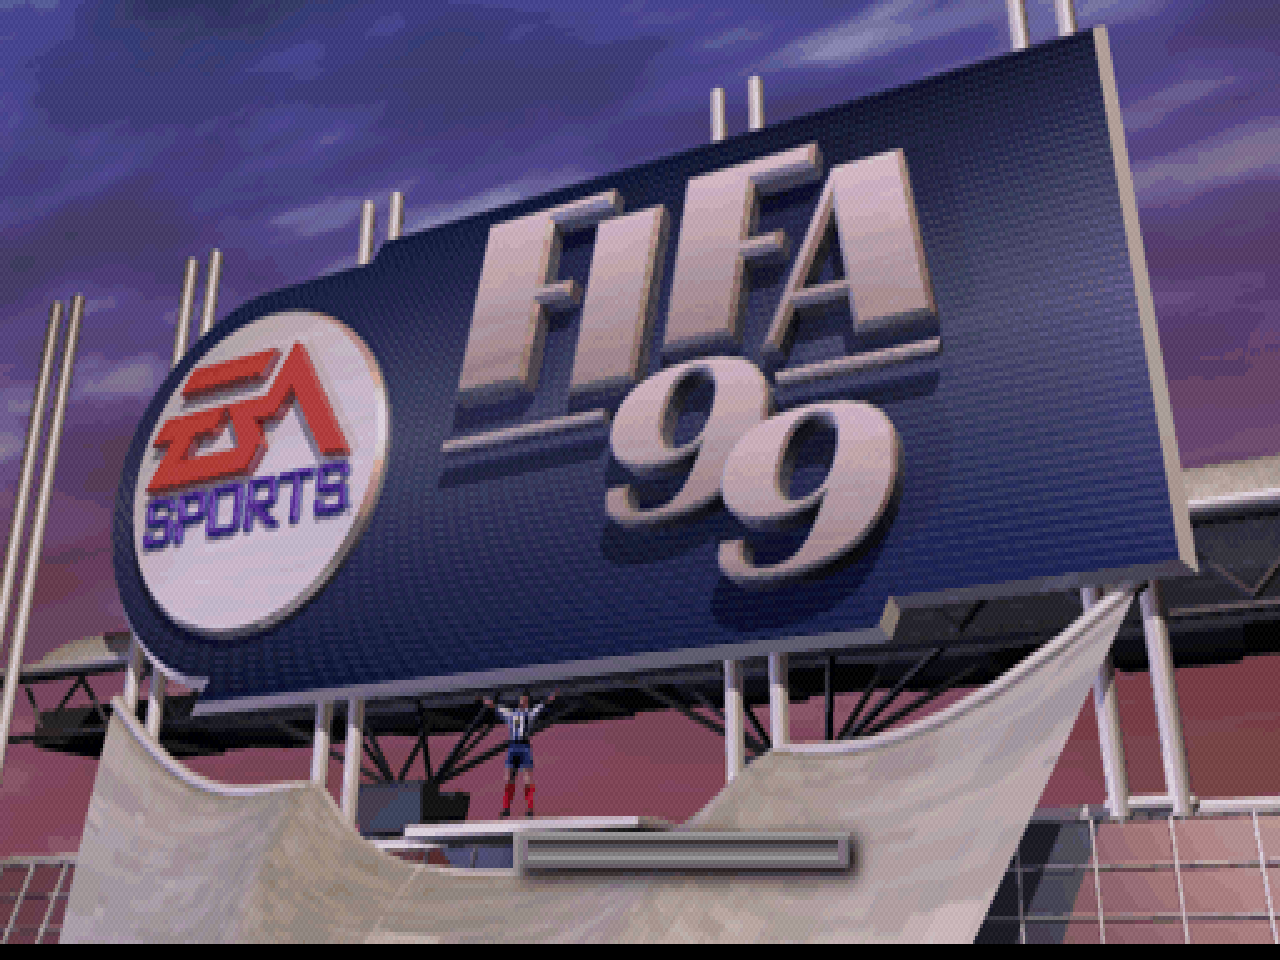 https://s3.eu-west-3.amazonaws.com/games.anthony-dessalles.com/FIFA 99 PS1 2020 - Screenshots/FIFA 99-201123-184537.png